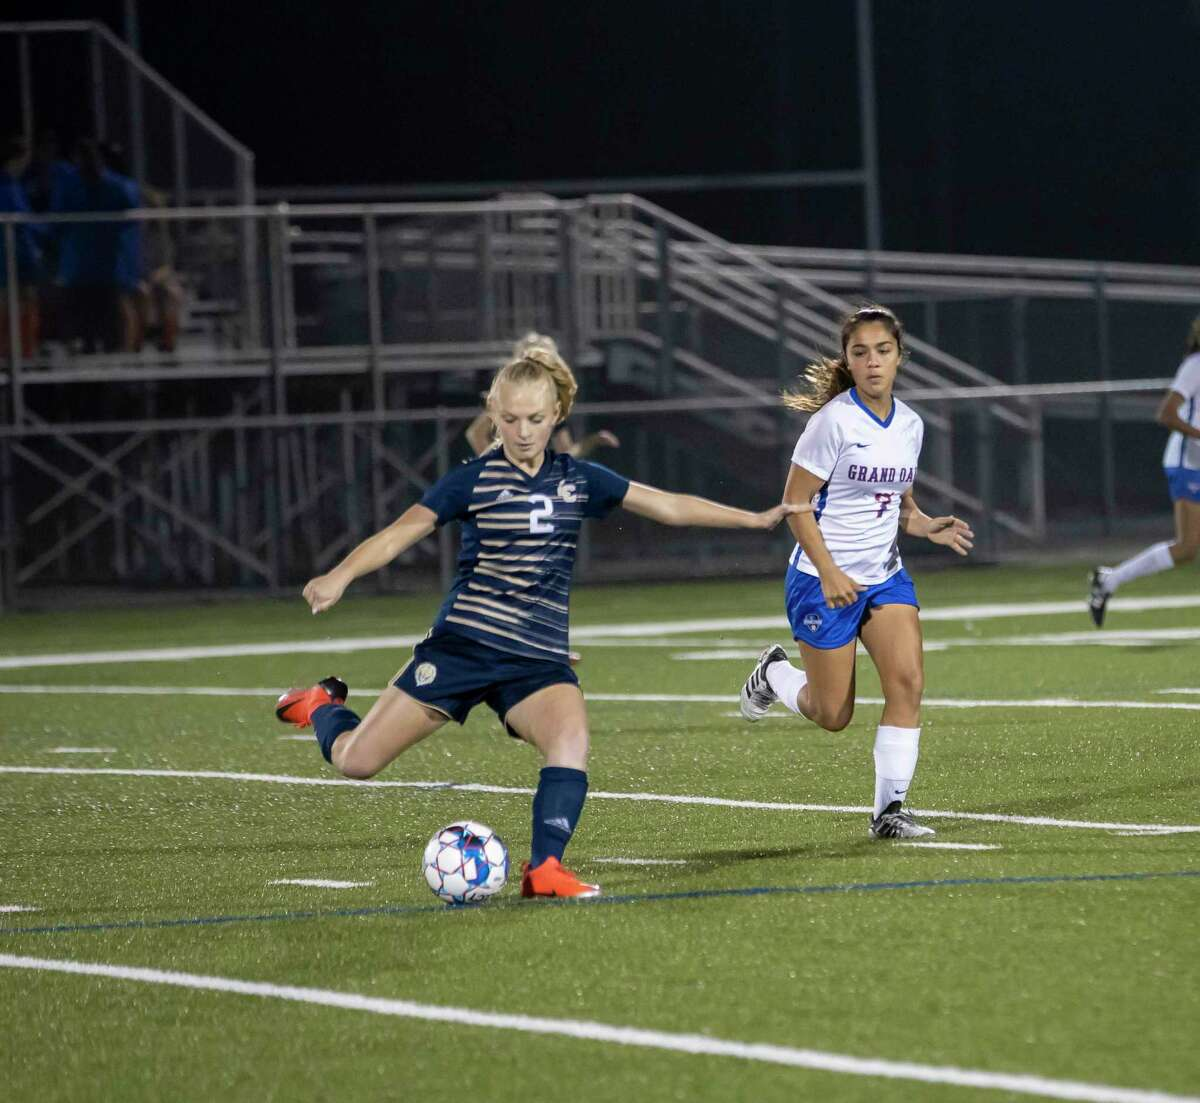 Lake Creek forward Katelyn Denley (2) passes the ball with Grand Oaks midfielder Analise Caudle (7) trailing behind in a District 20-5A girls soccer game in Montgomery on Friday, January 17, 2020.